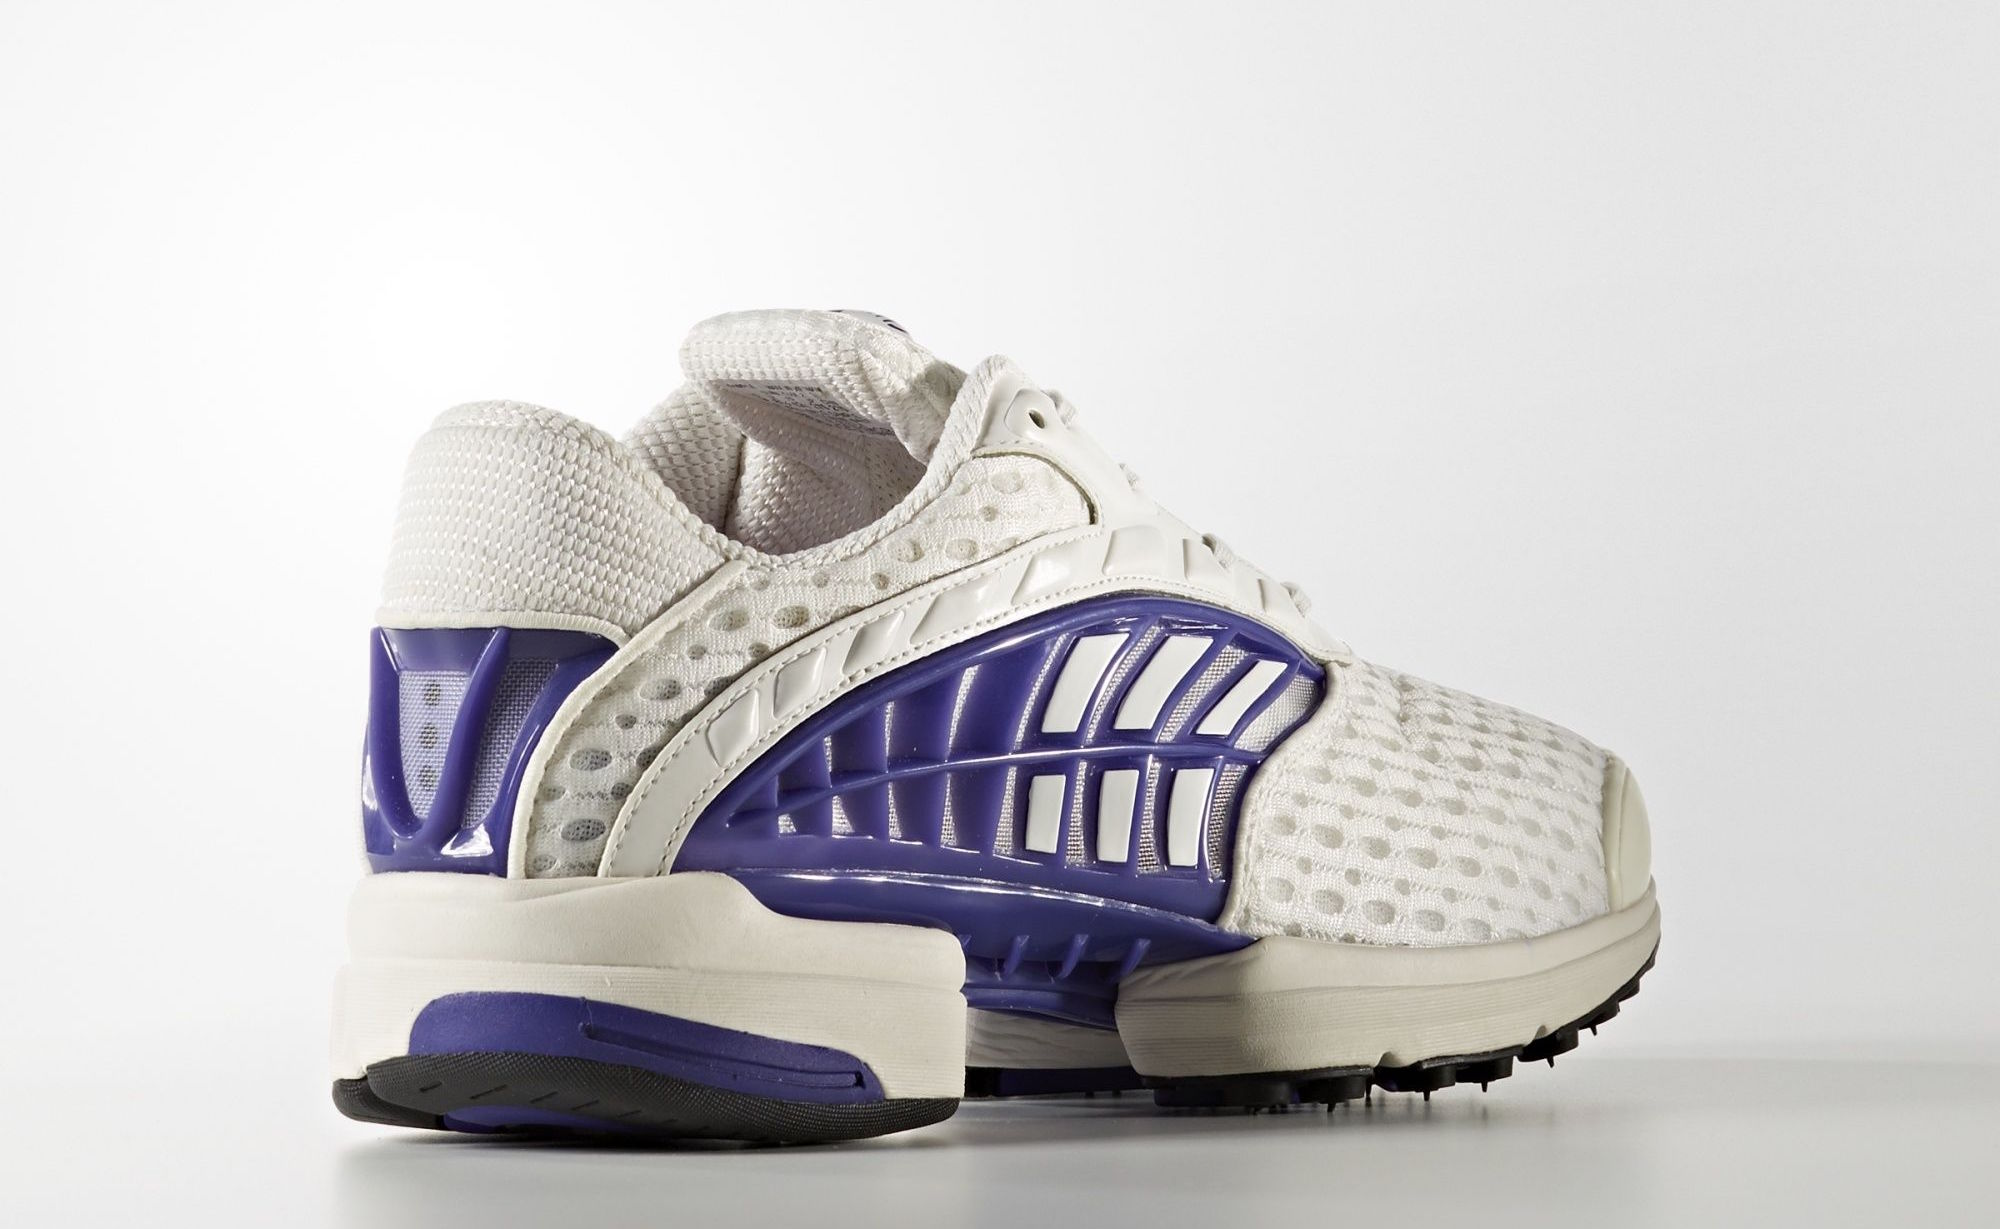 adidas climacool running shoes purple